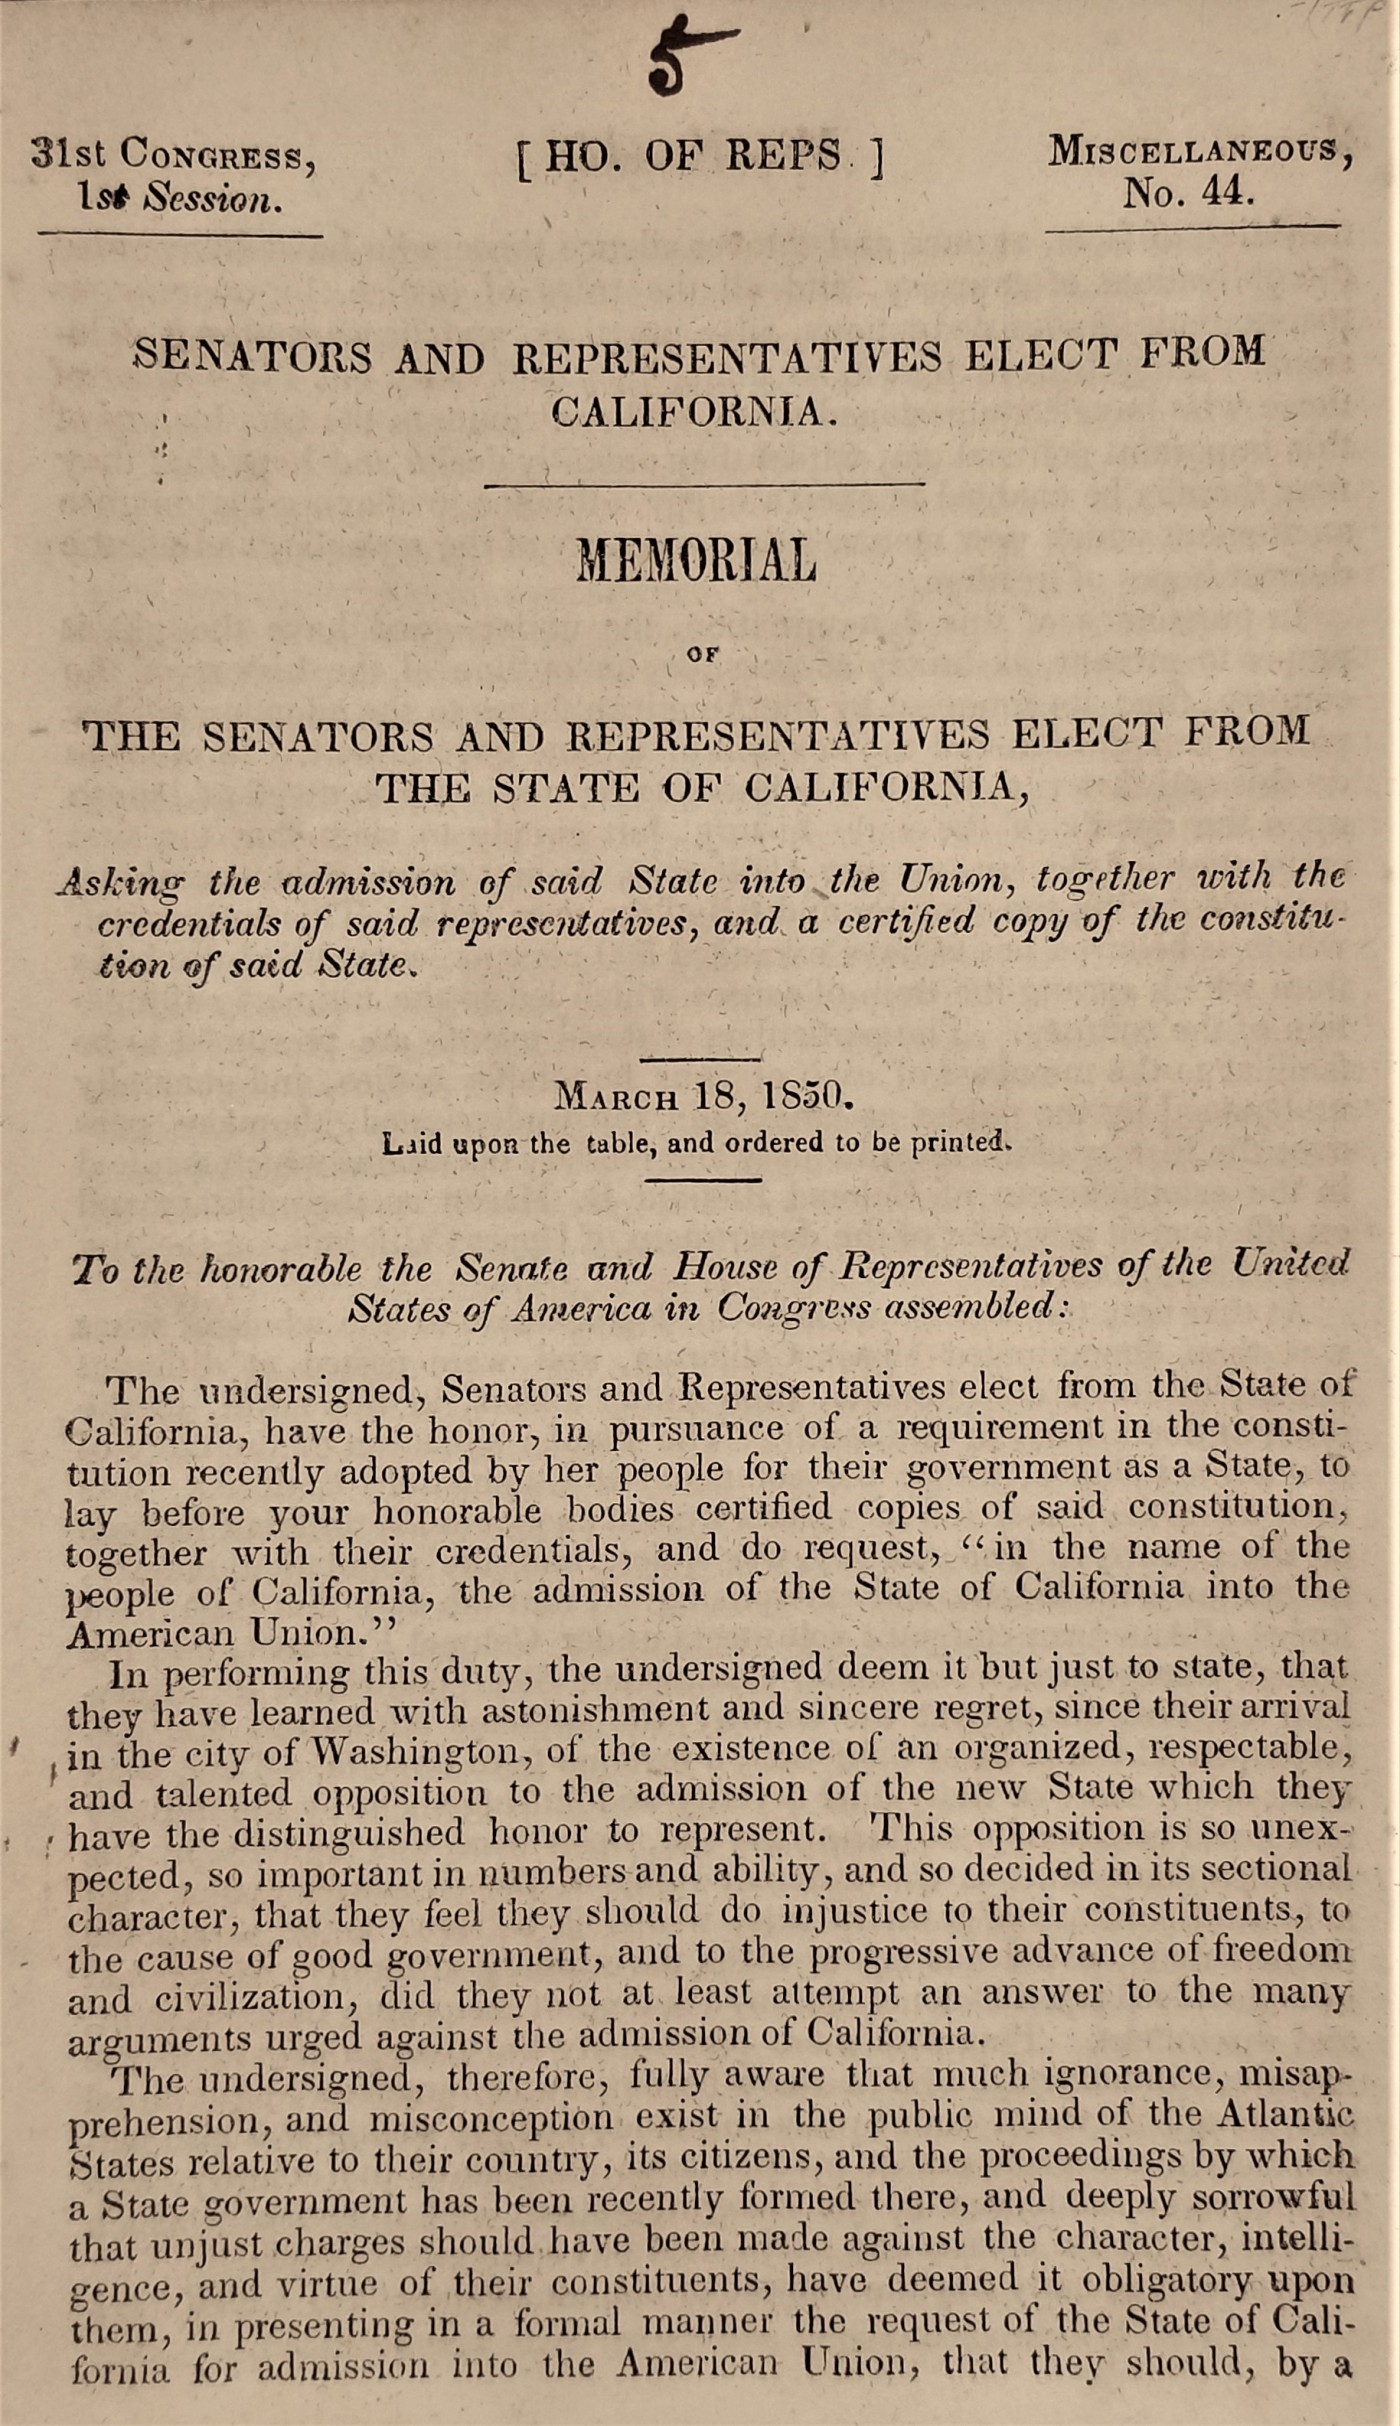 Asking for Admission: California's Representatives and Their